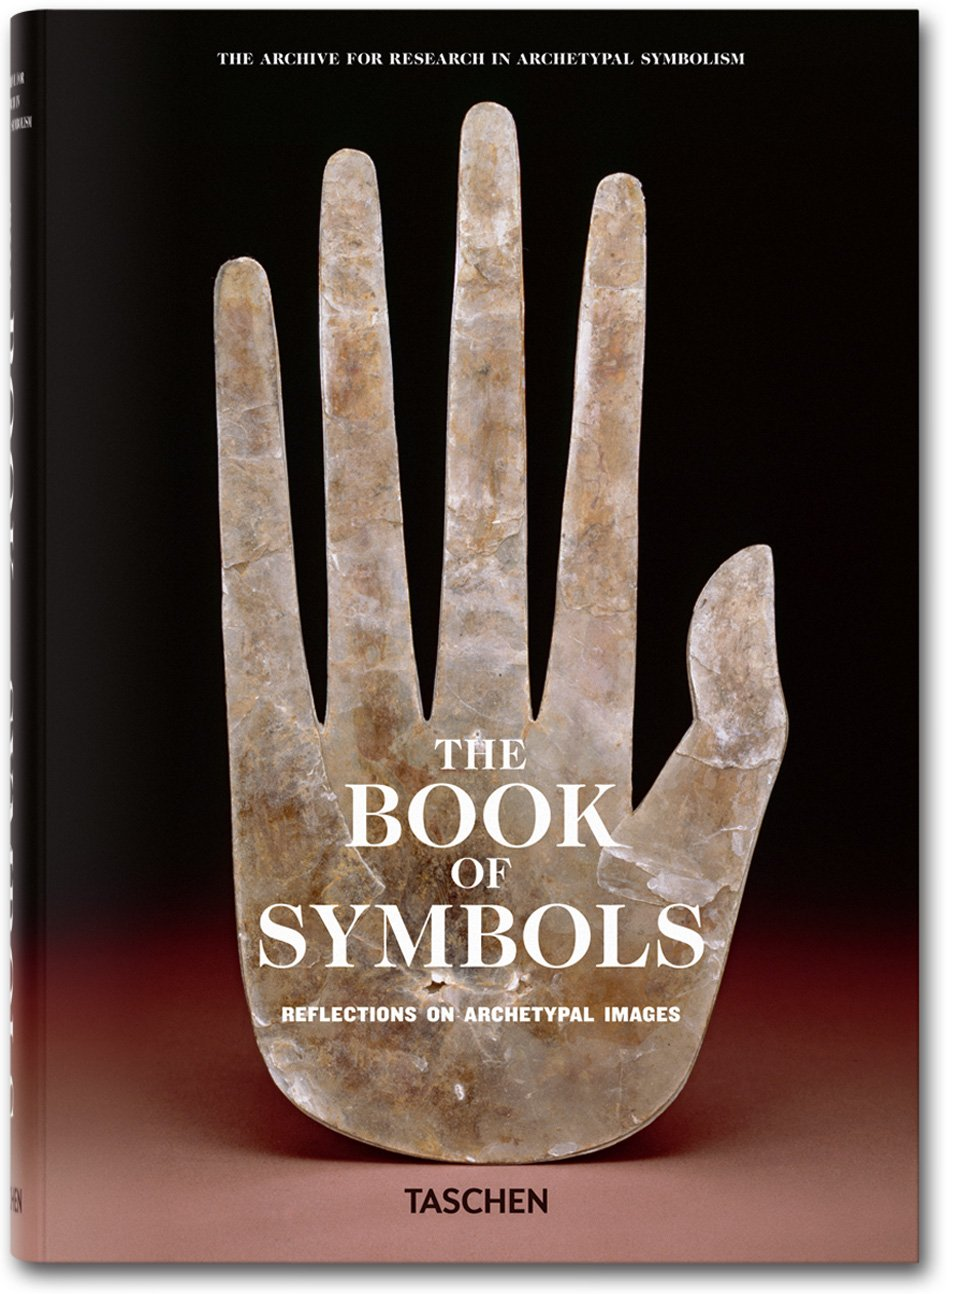 The Book of Symbols, published by TASCHEN Books